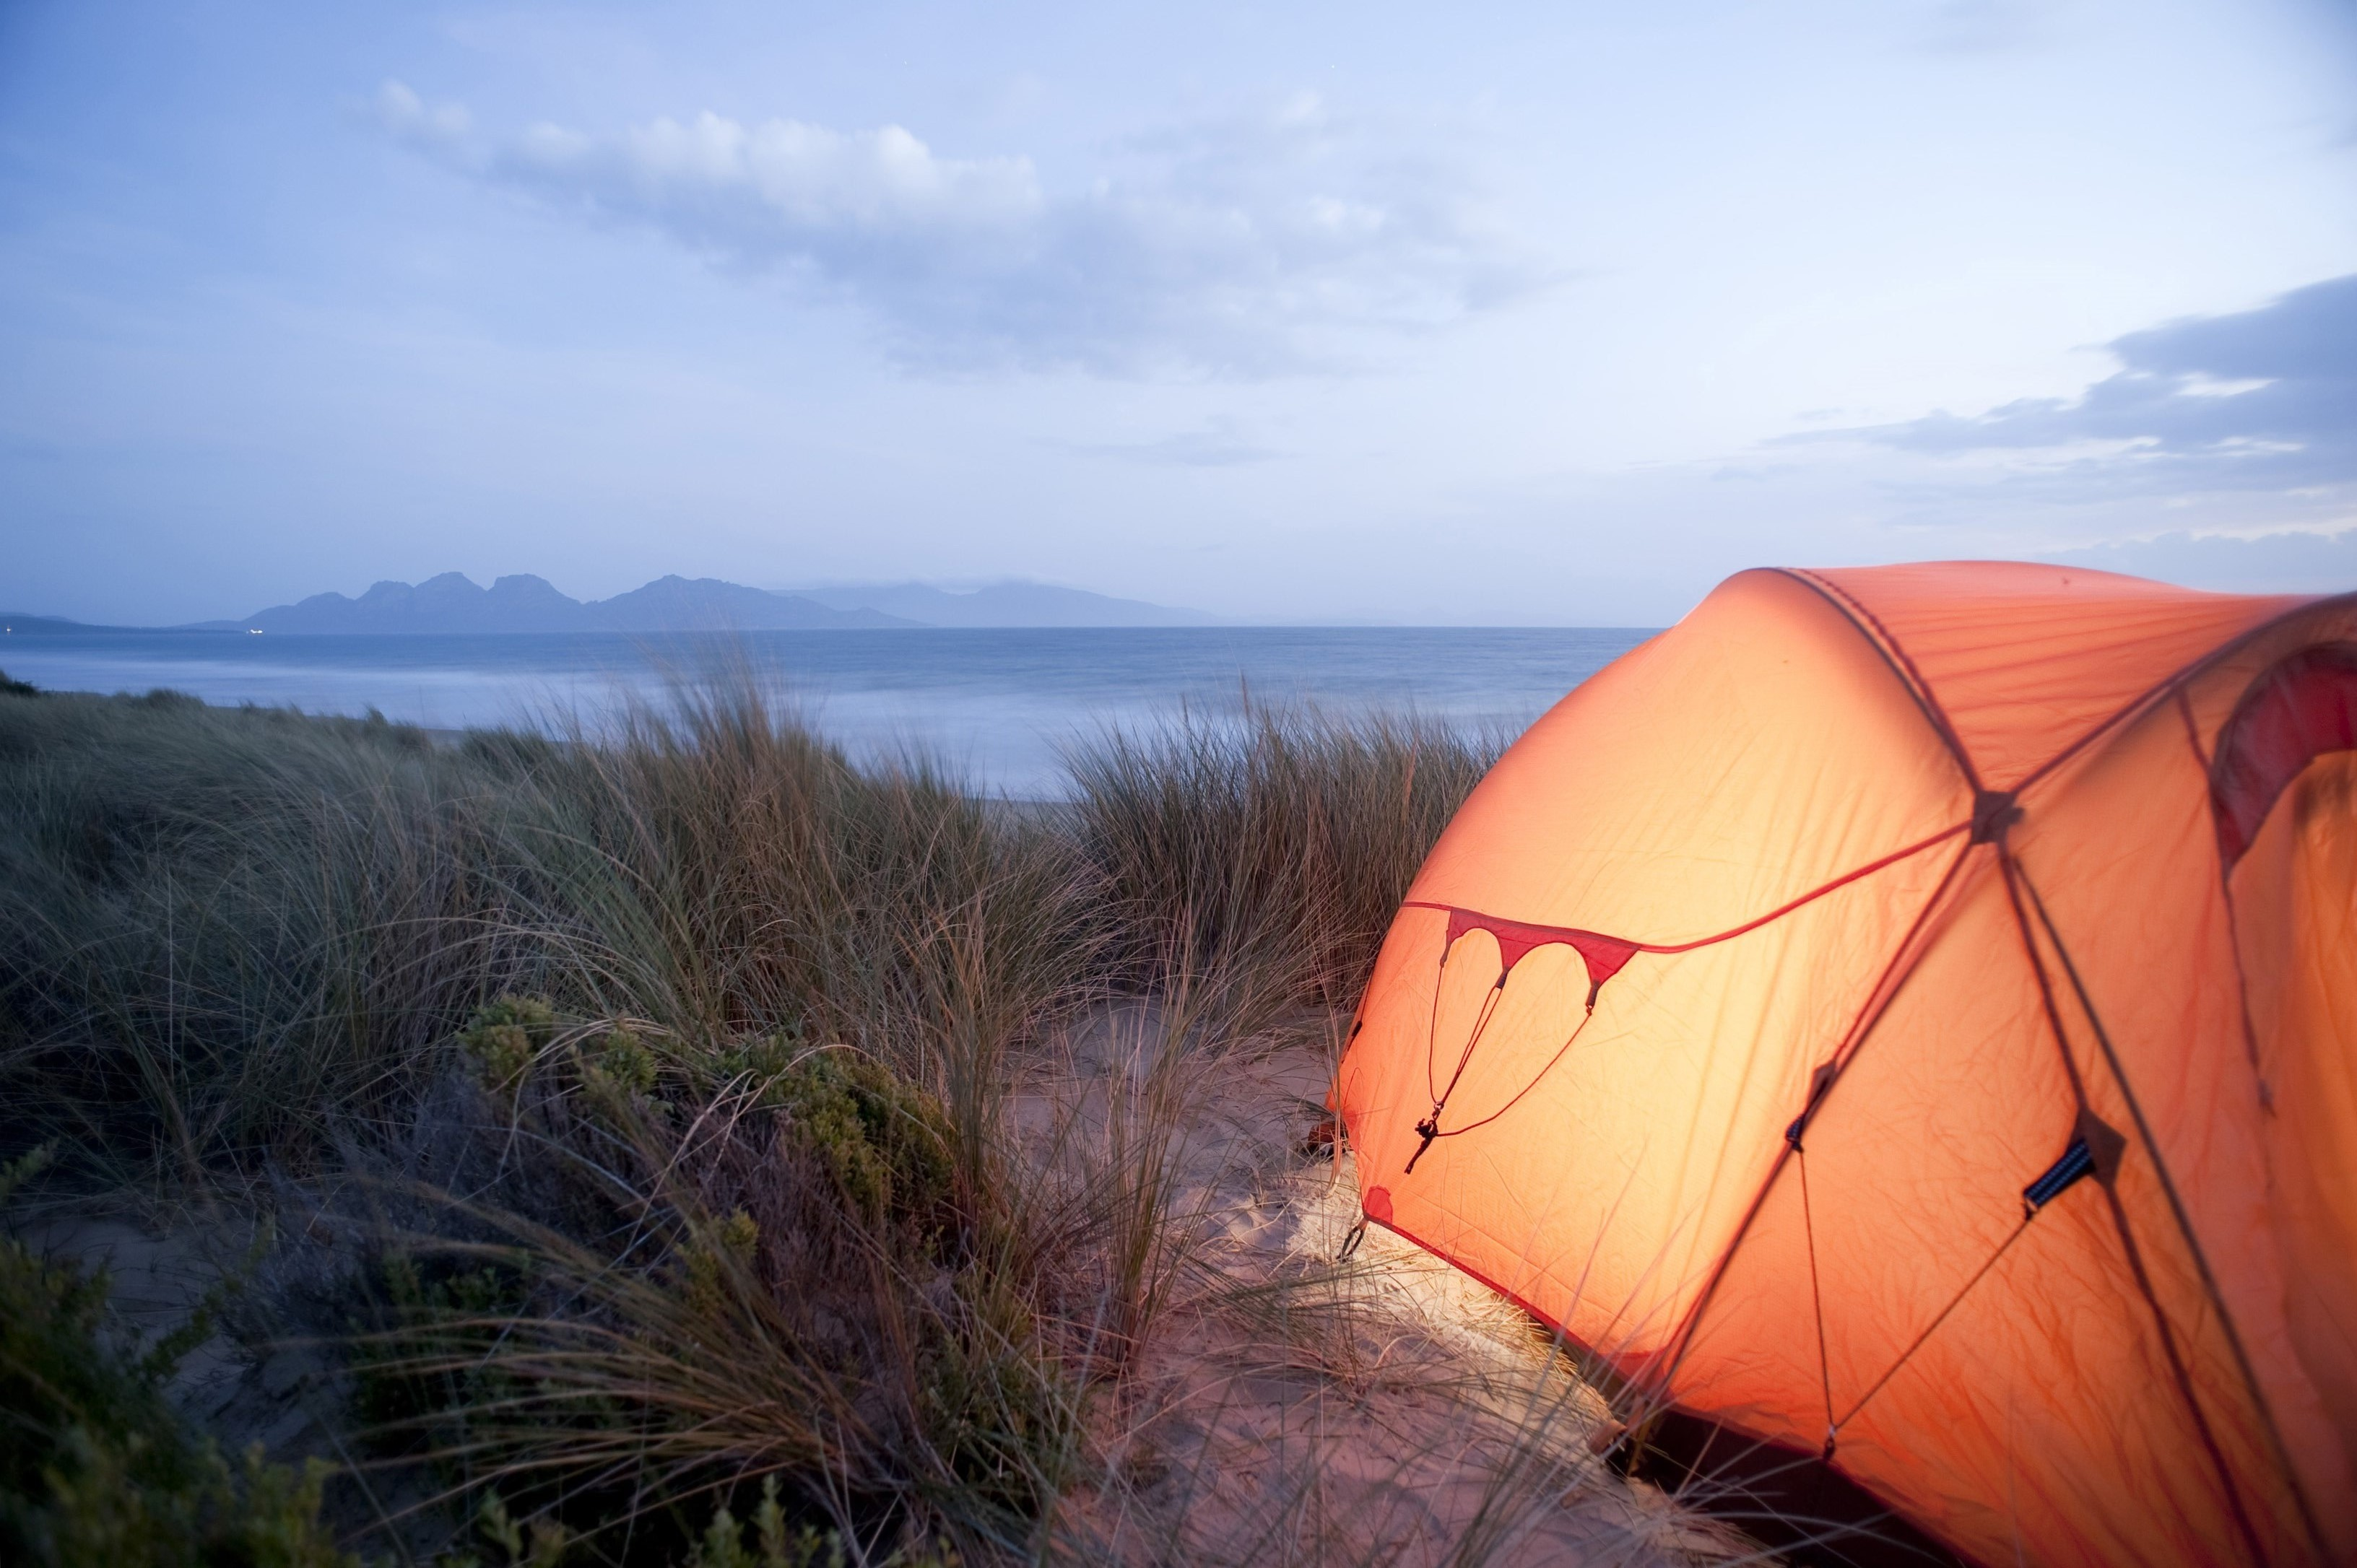 Camping tent pitched overlooking a distant marine bay illuminated at night from inside glowing in the evening light with copyspace